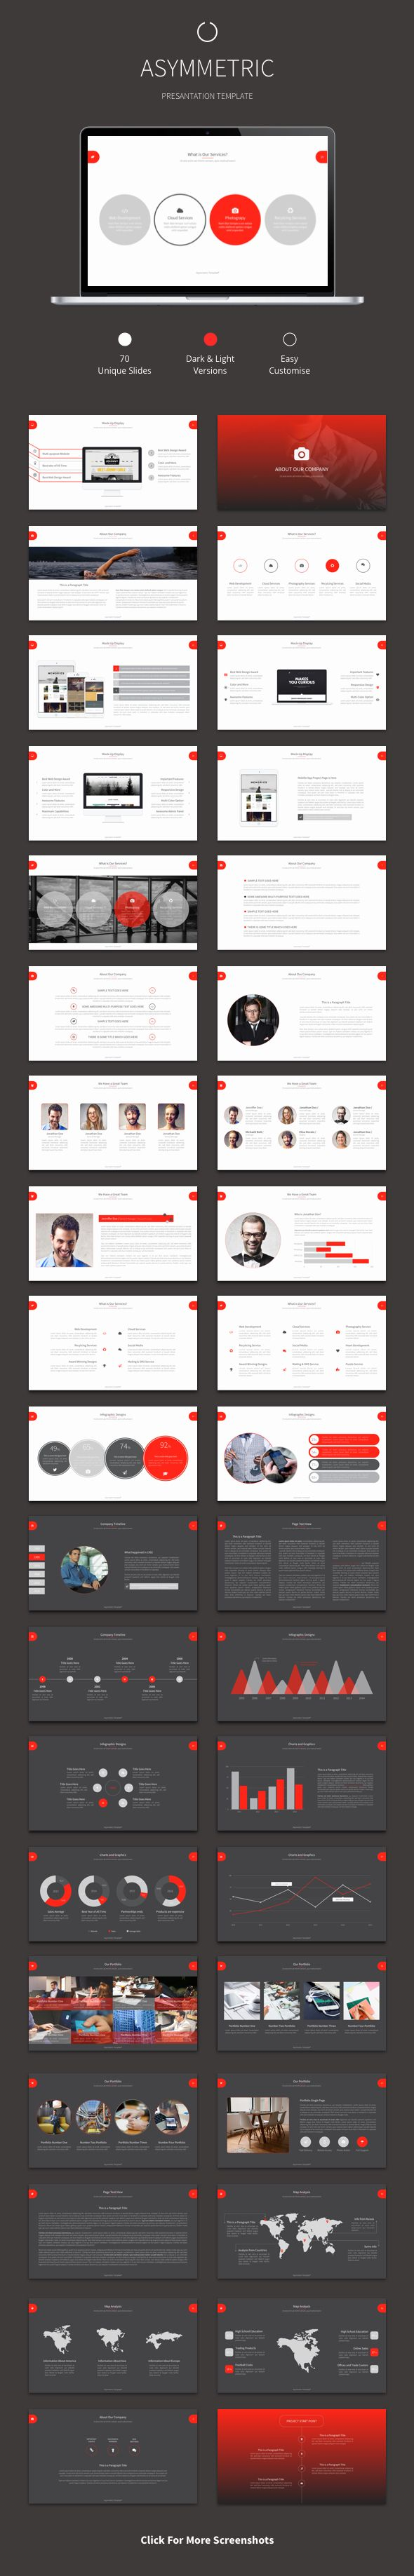 Asymmetric Keynote Template - Creative #Keynote Templates Download here: https://graphicriver.net/item/asymmetric-keynote-template/19664002?ref=alena994